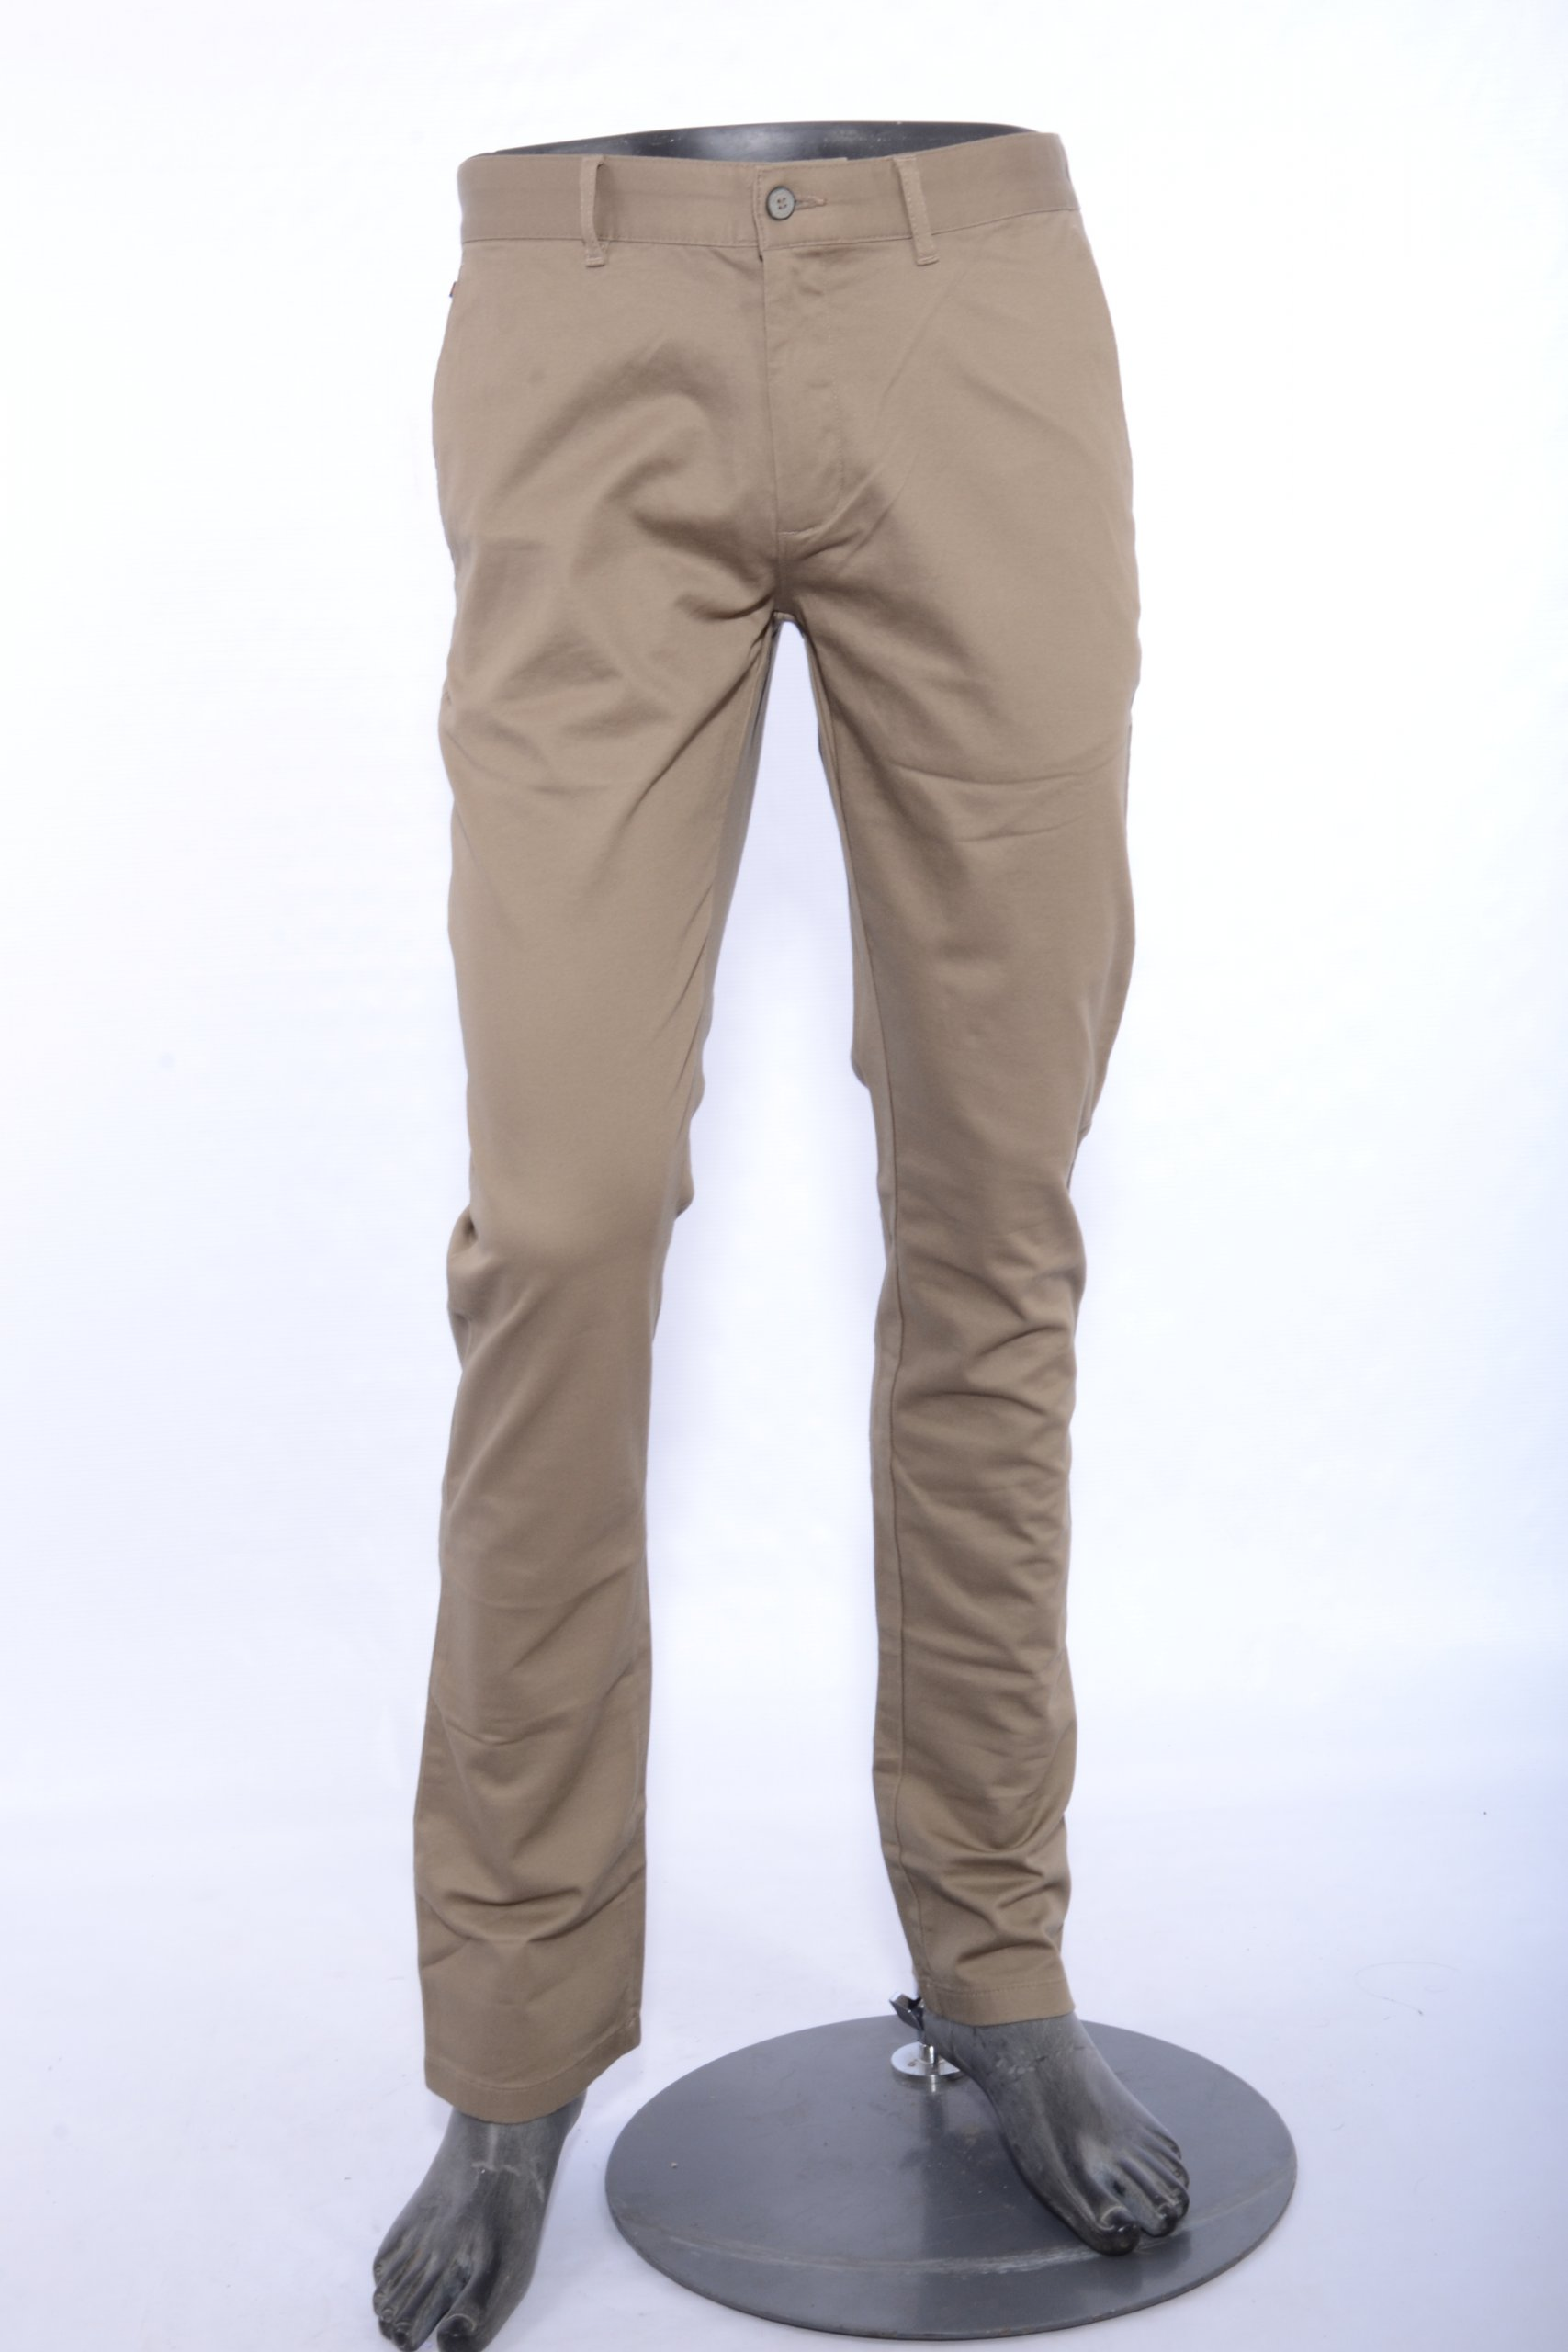 Grey Coloured Trouser by Black Berry